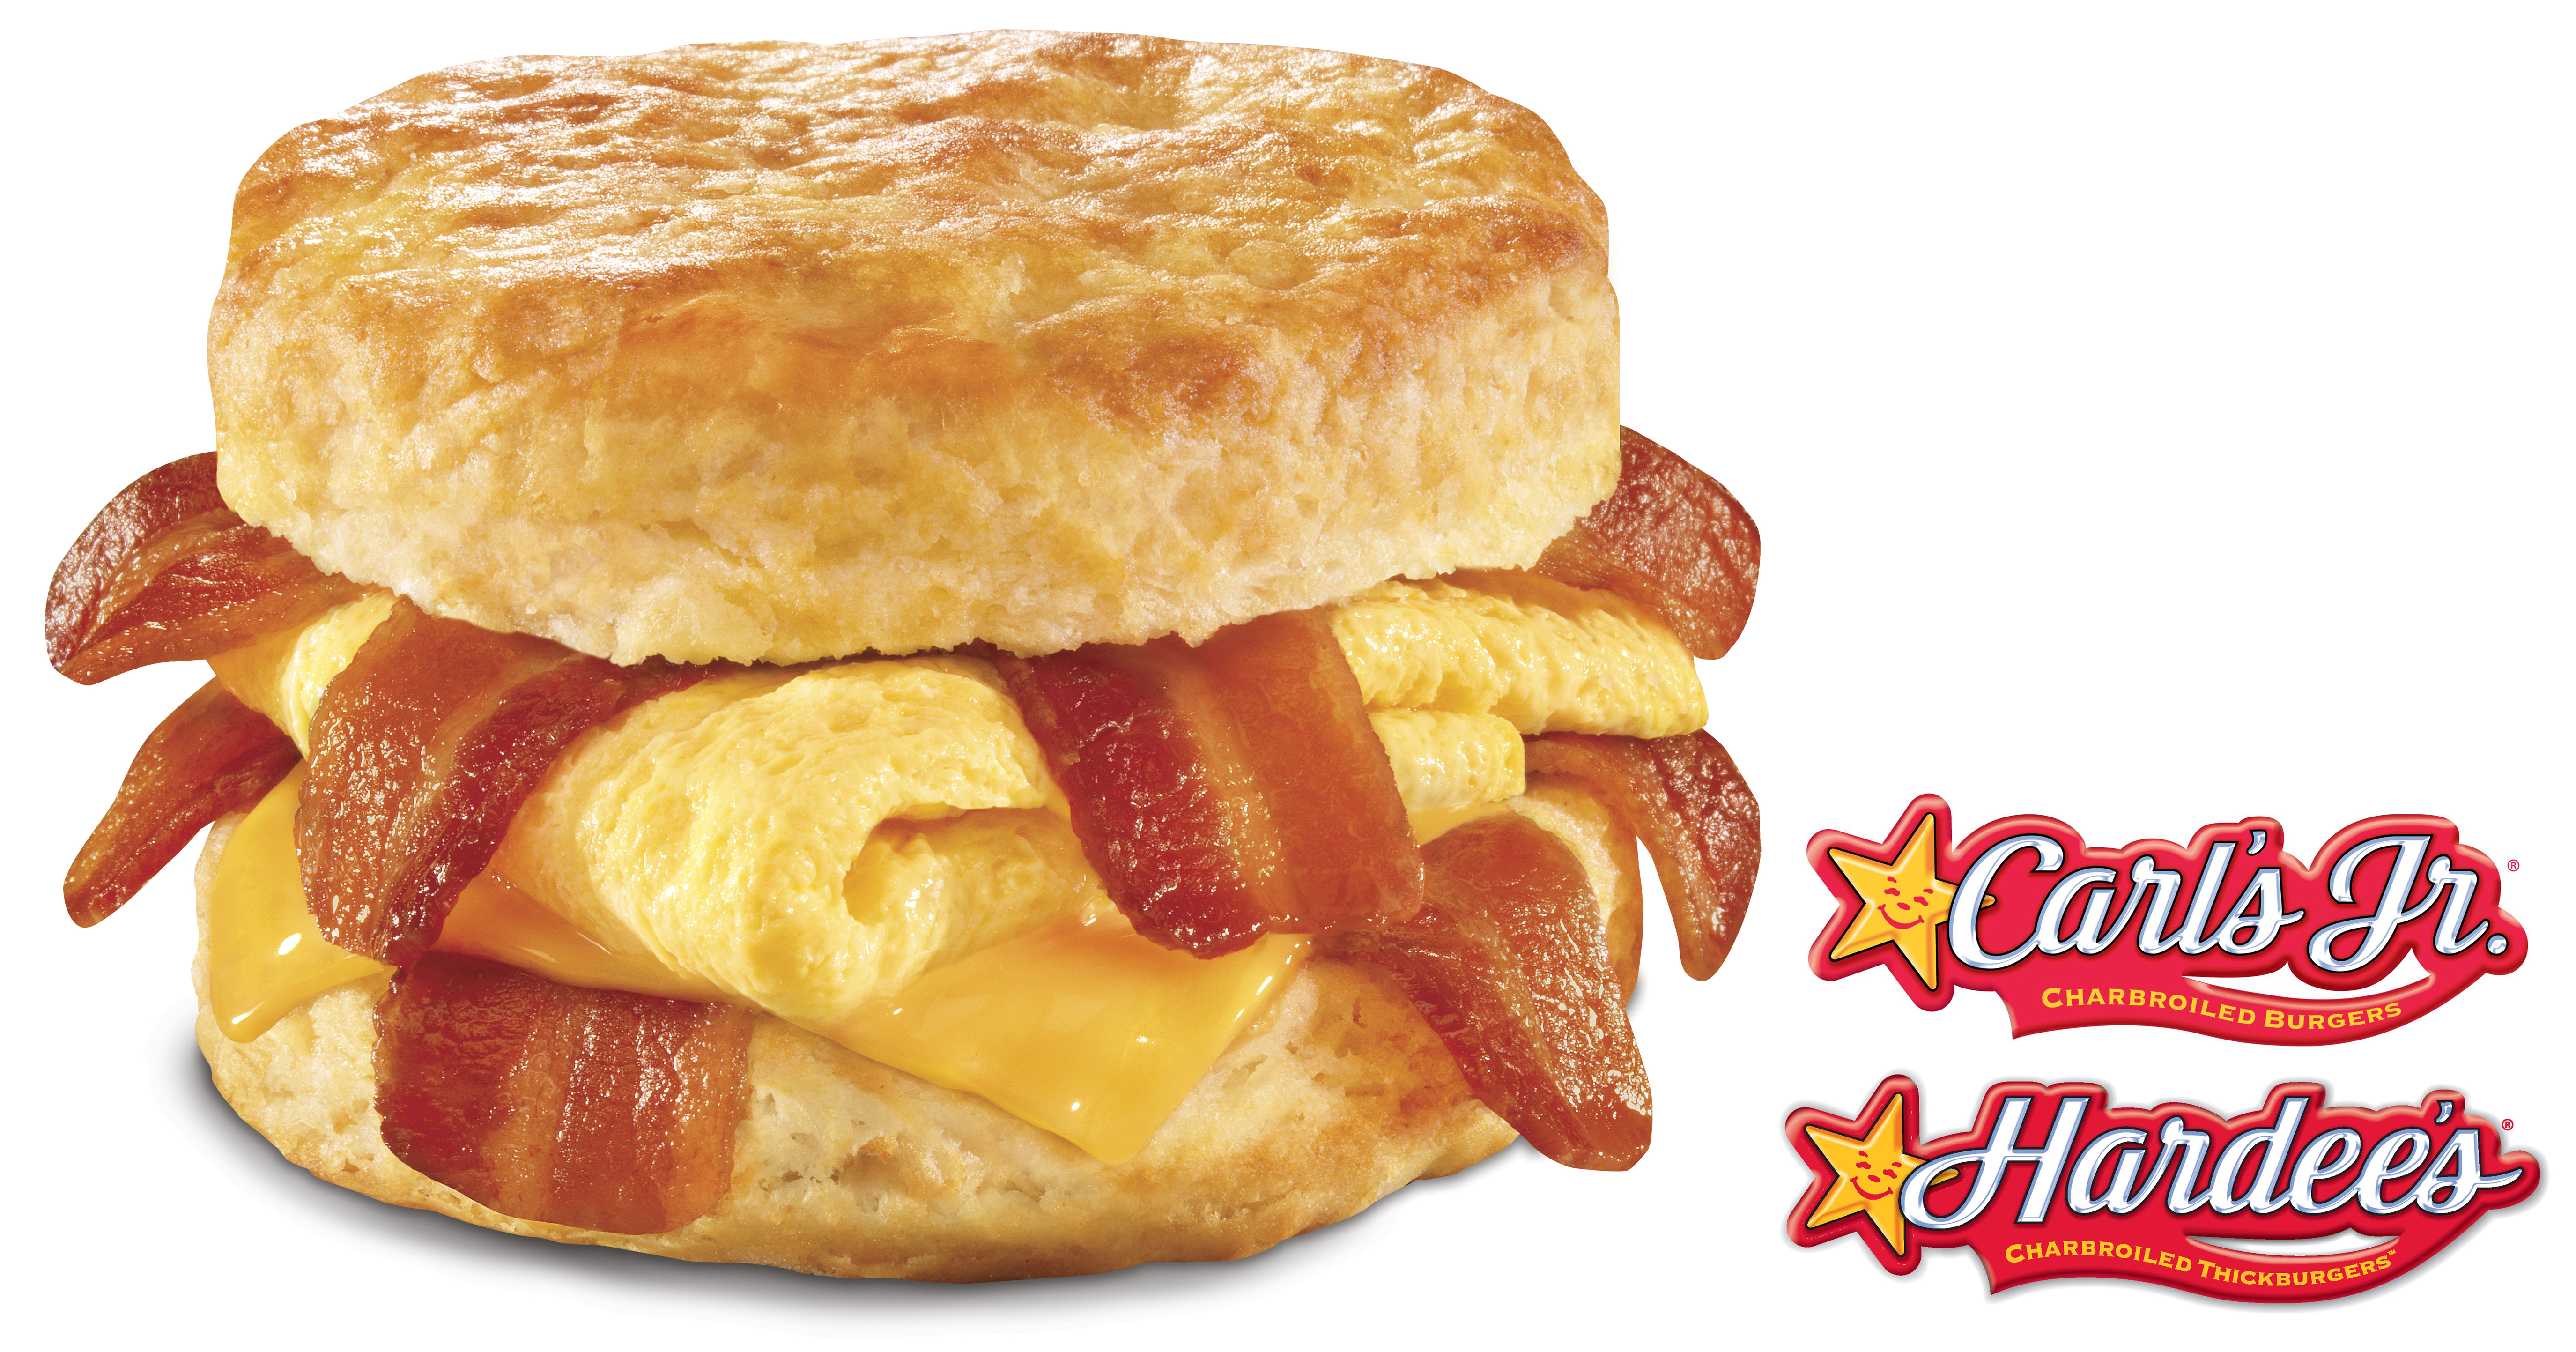 Fit for any superhuman appetite, the X-Tra Bacon, Egg & Cheese Biscuit from Carl's Jr. and Hardee's packs four strips of bacon (twice the normal amount), folded egg and American cheese served on a Made from Scratch Buttermilk Biscuit. (Photo: Business Wire)